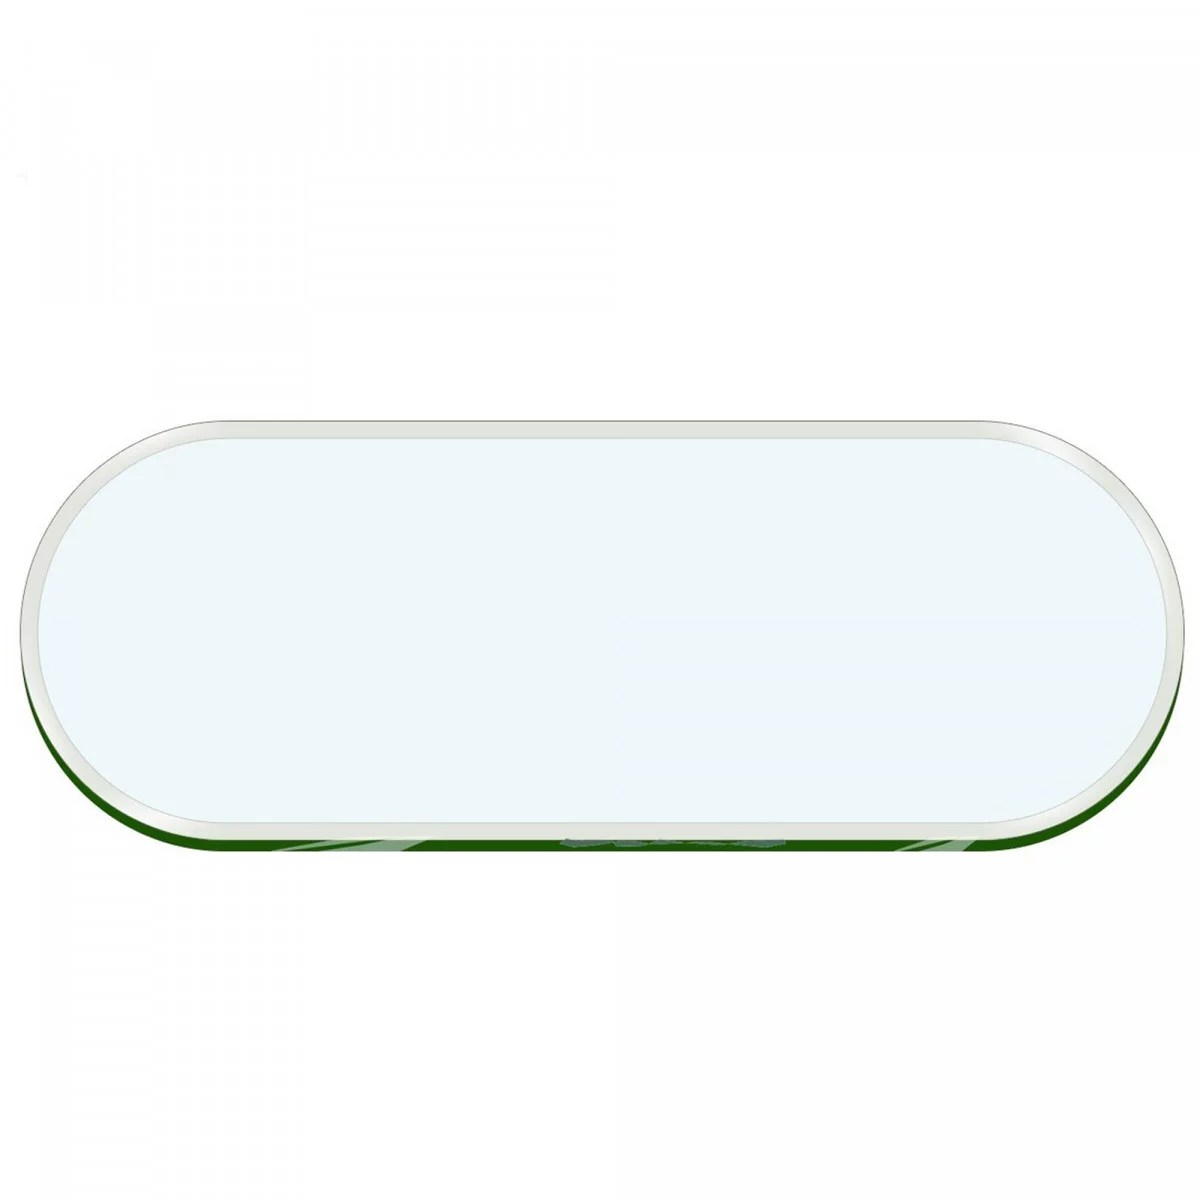 42 x 72 inch oval racetrack glass table top 1 2 inch thick clear tempered glass with 1 beveled edge polished